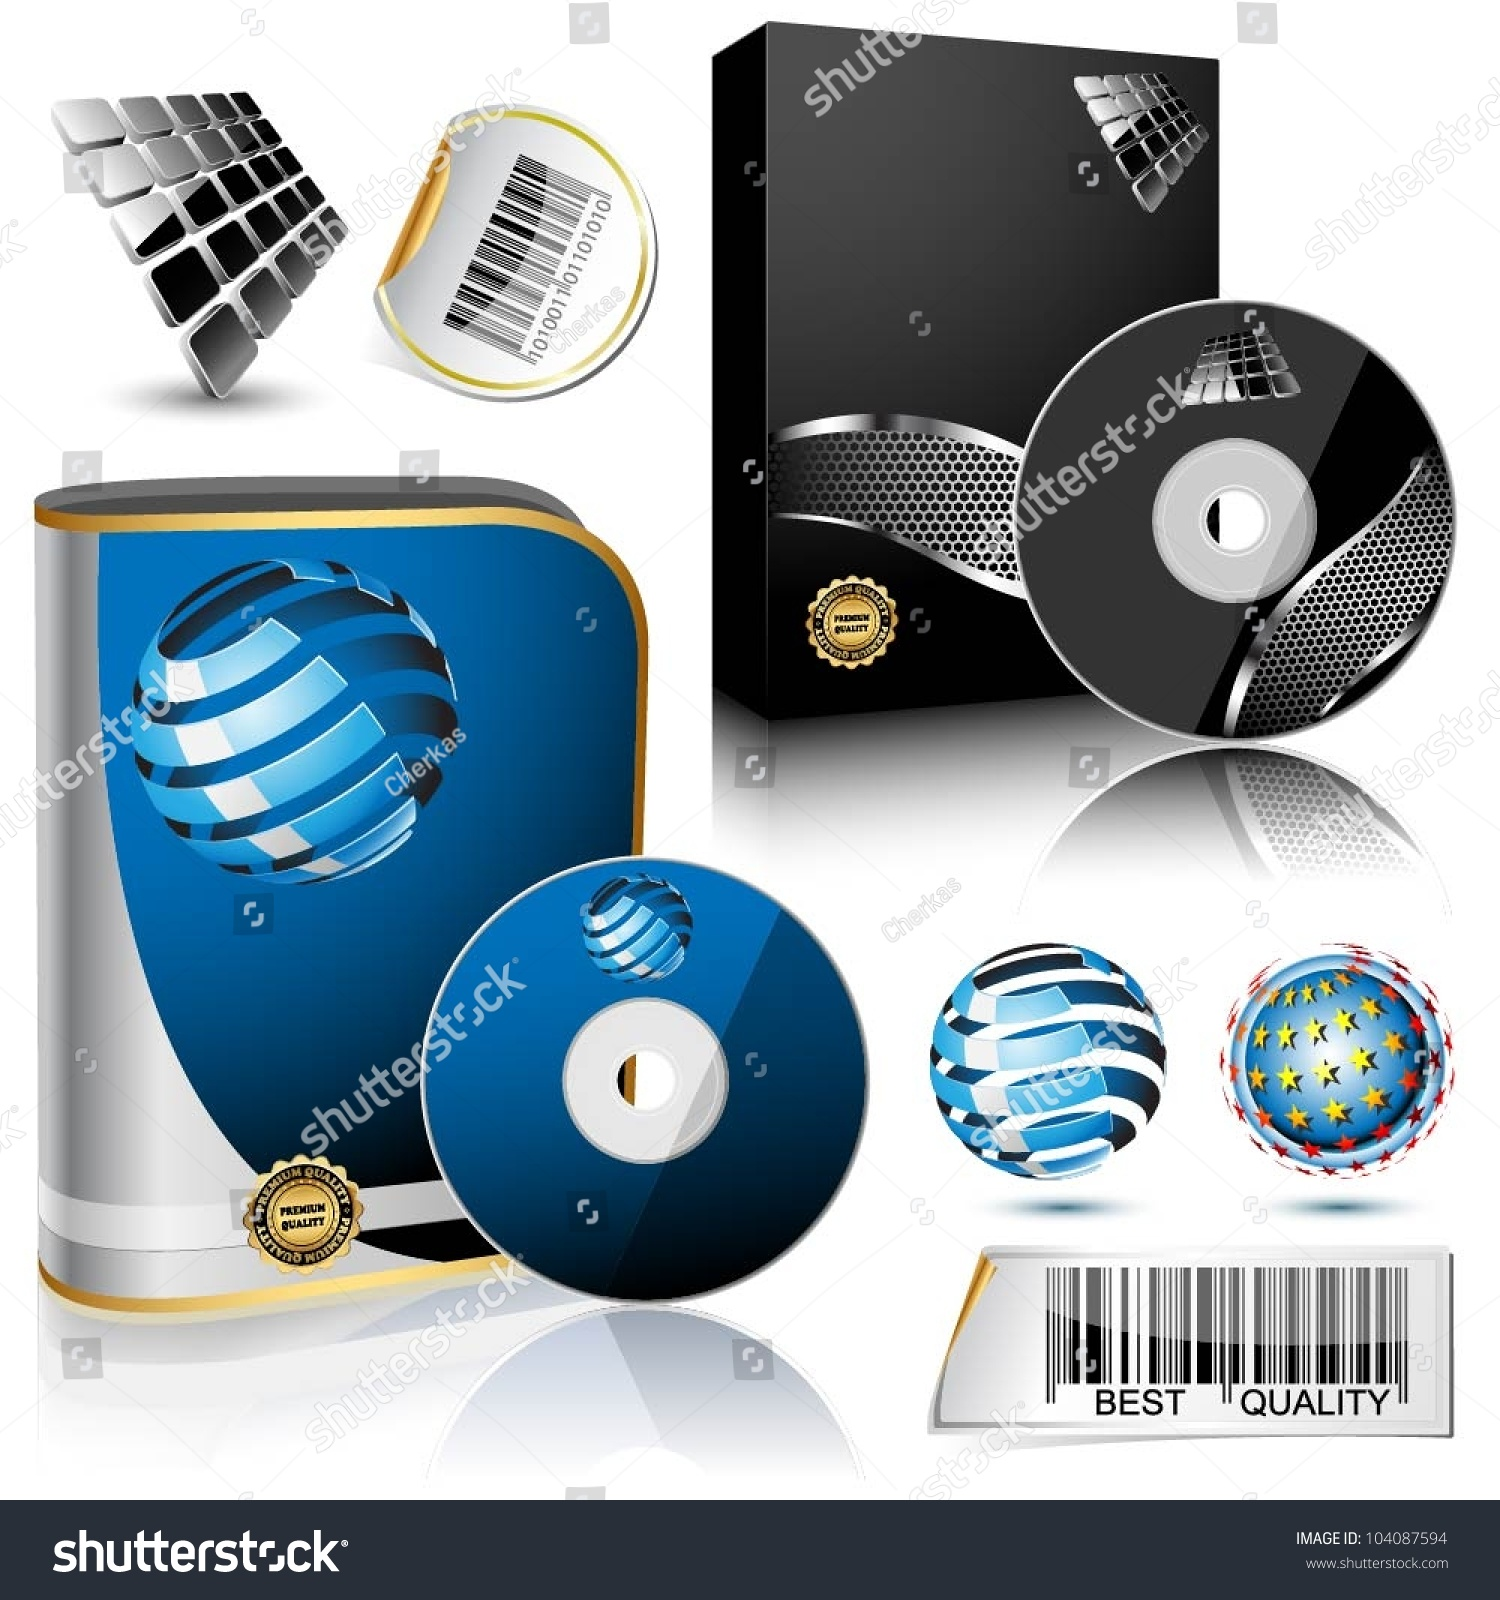 Software box and disc isolated on white background vector Vector image software